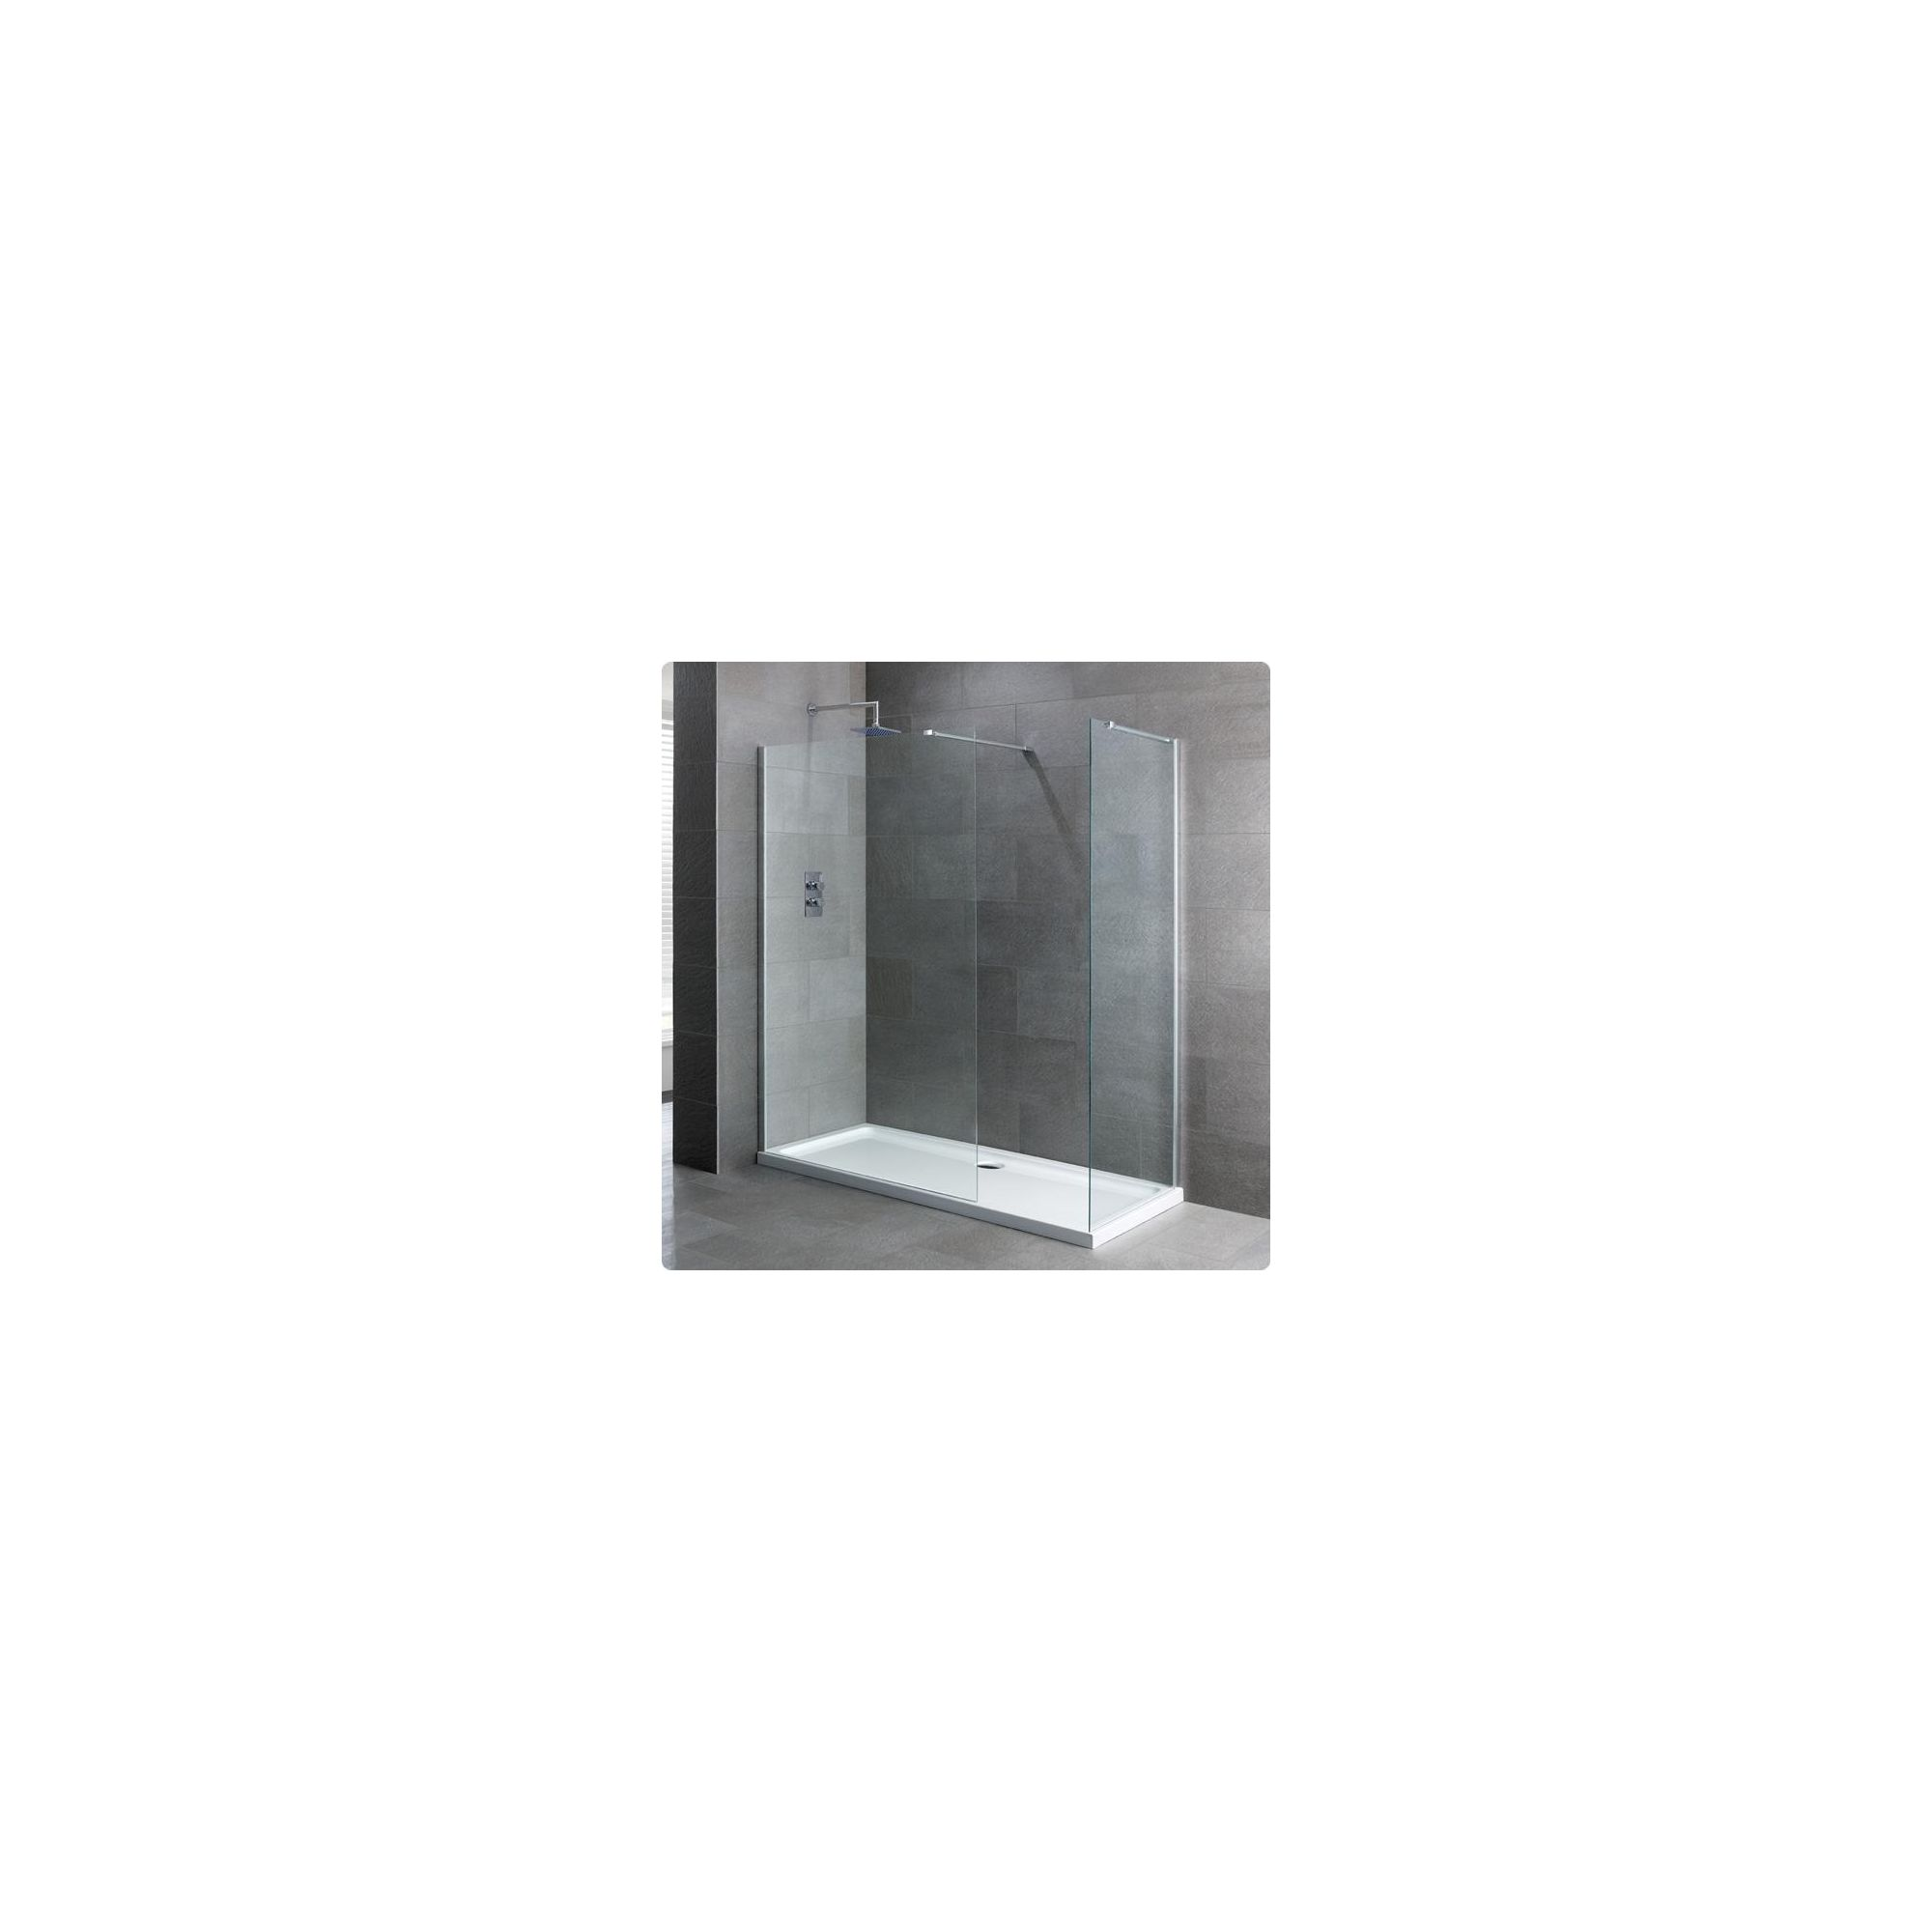 Duchy Select Silver Walk-In Shower Enclosure 1400mm x 700mm, Standard Tray, 6mm Glass at Tesco Direct